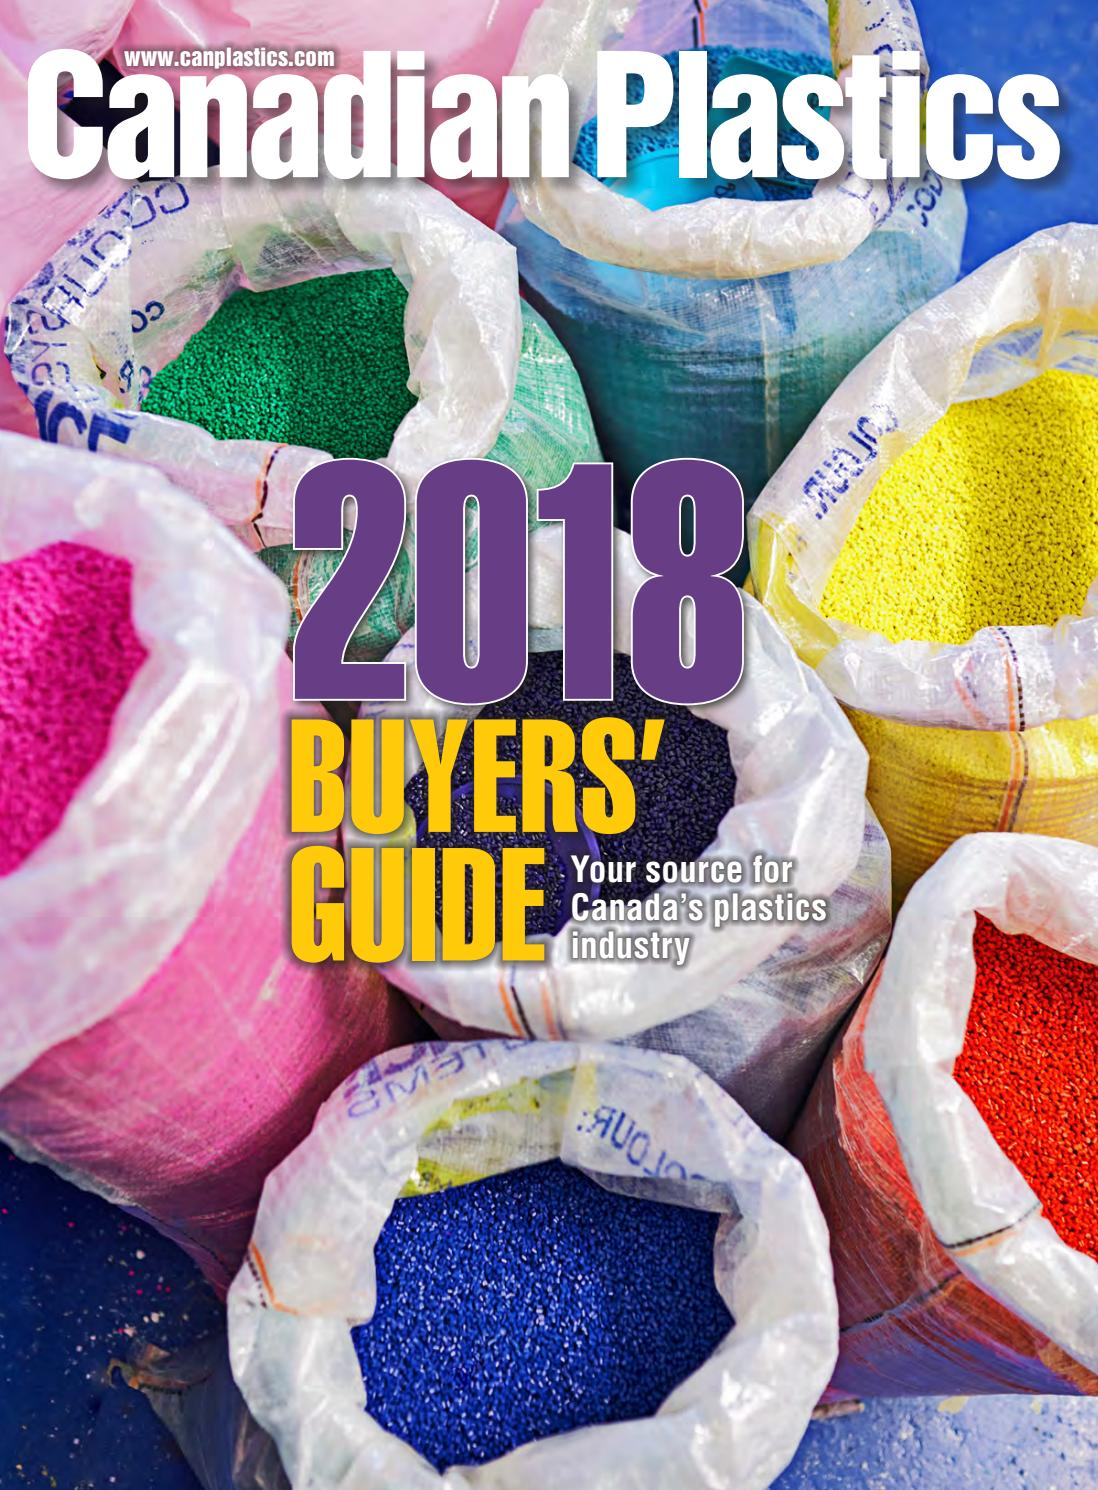 Canadian Plastics 2018 Buyers Guide by Annex Business Media - issuu